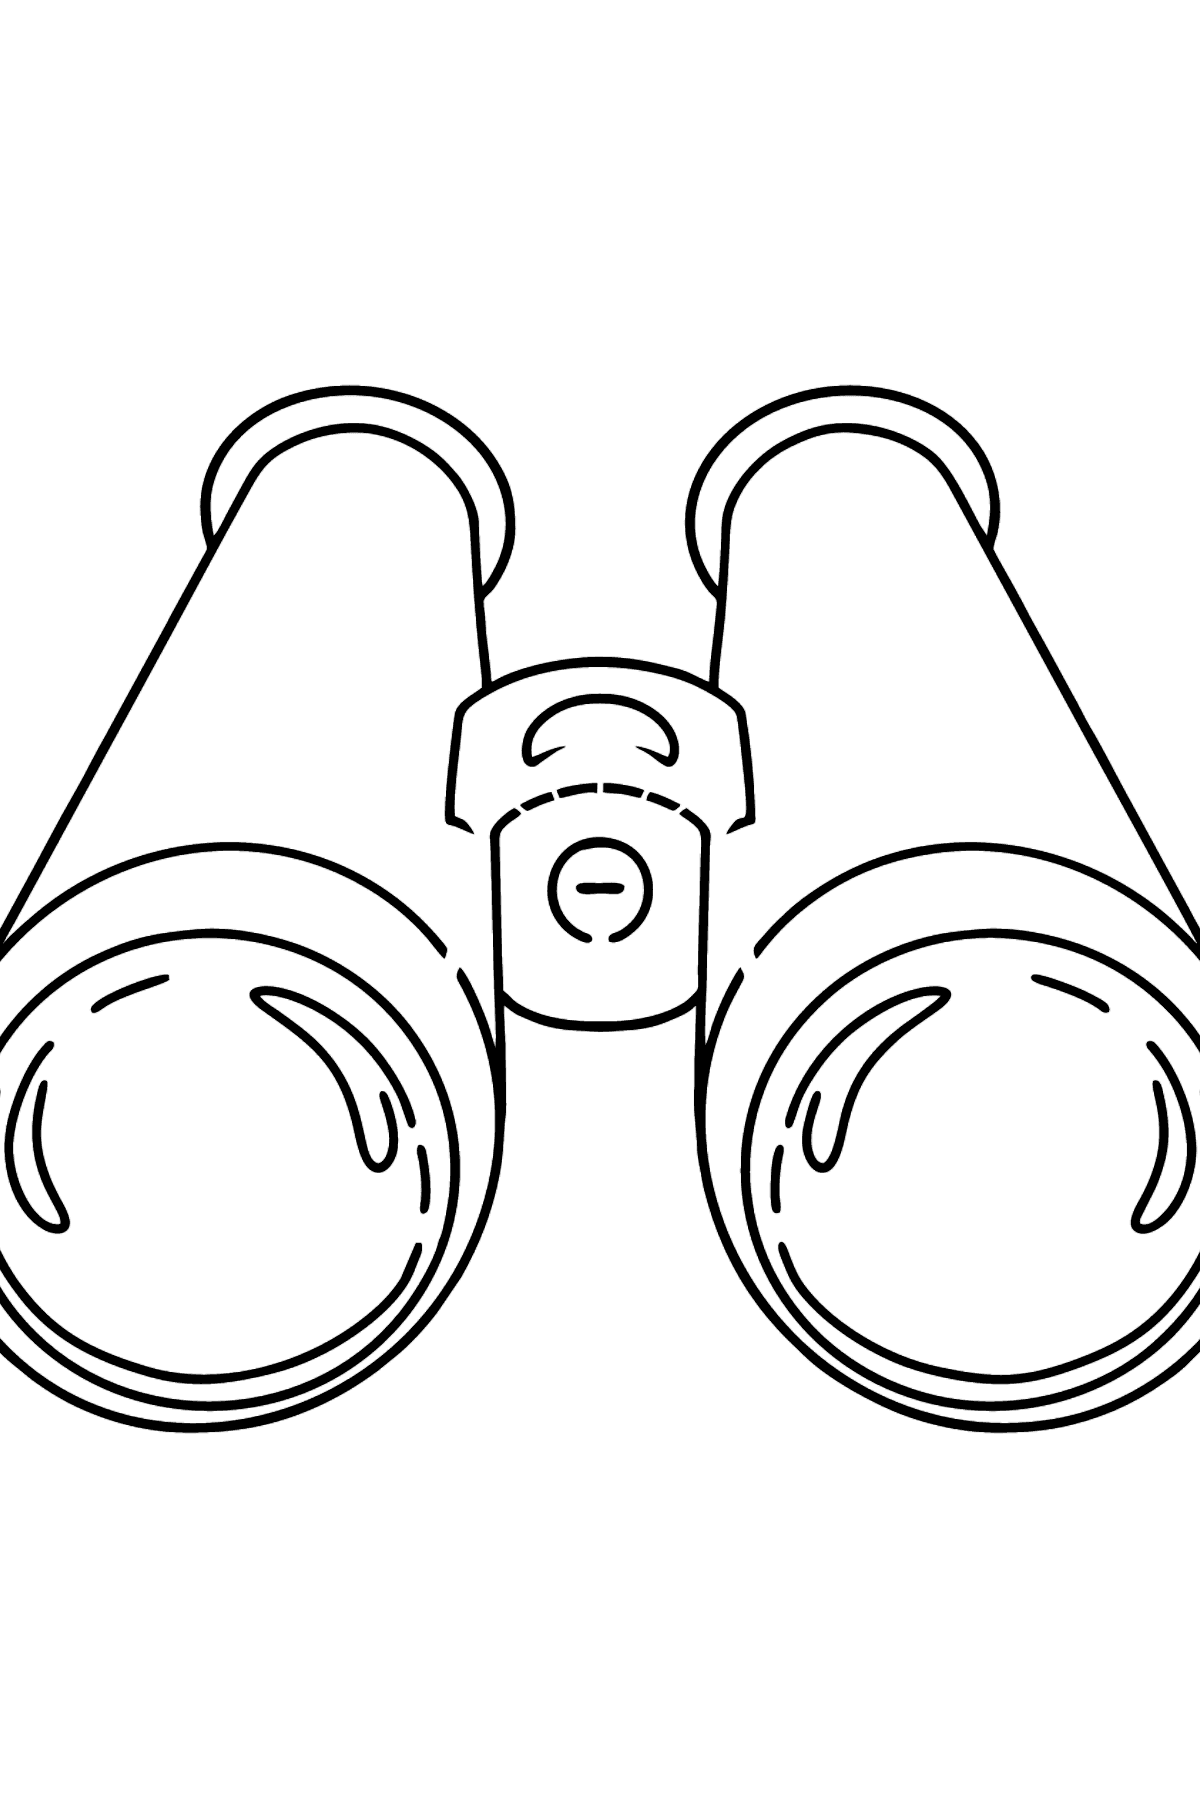 Binoculars coloring page - Coloring Pages for Kids